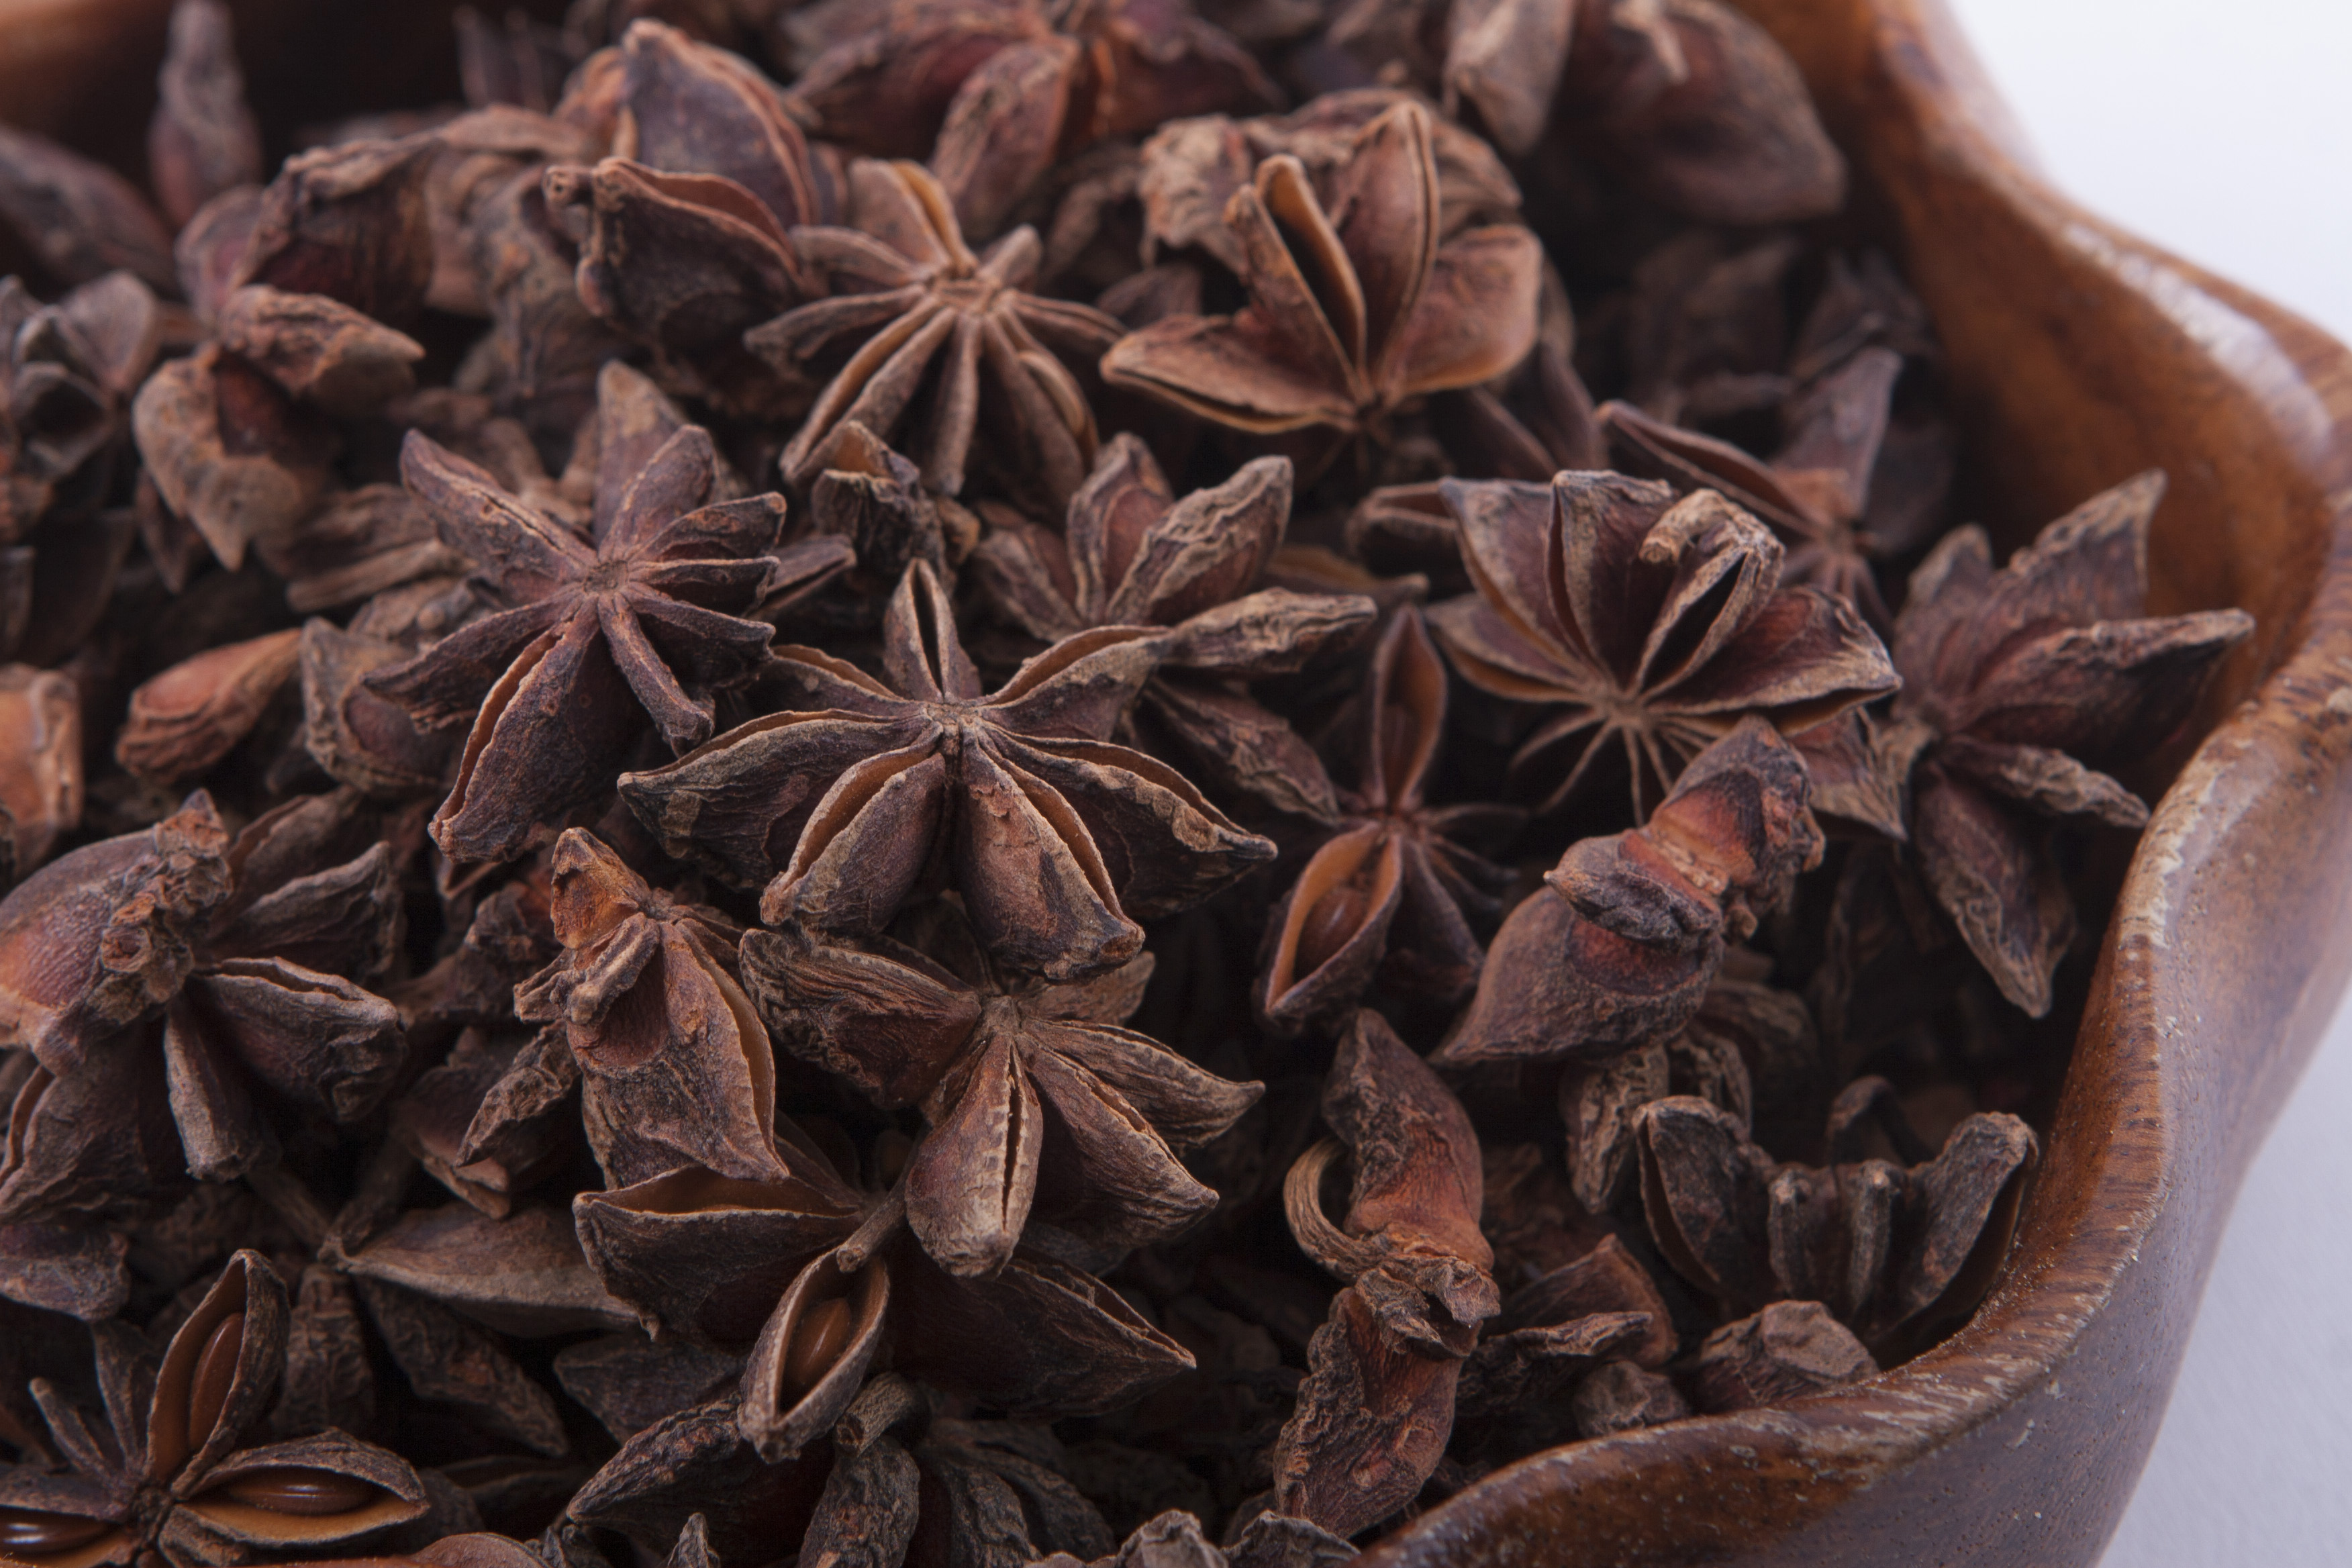 Star anise is an herb that is commonly grown in China Its also the main ingredient in the prescription drug Tamiflu